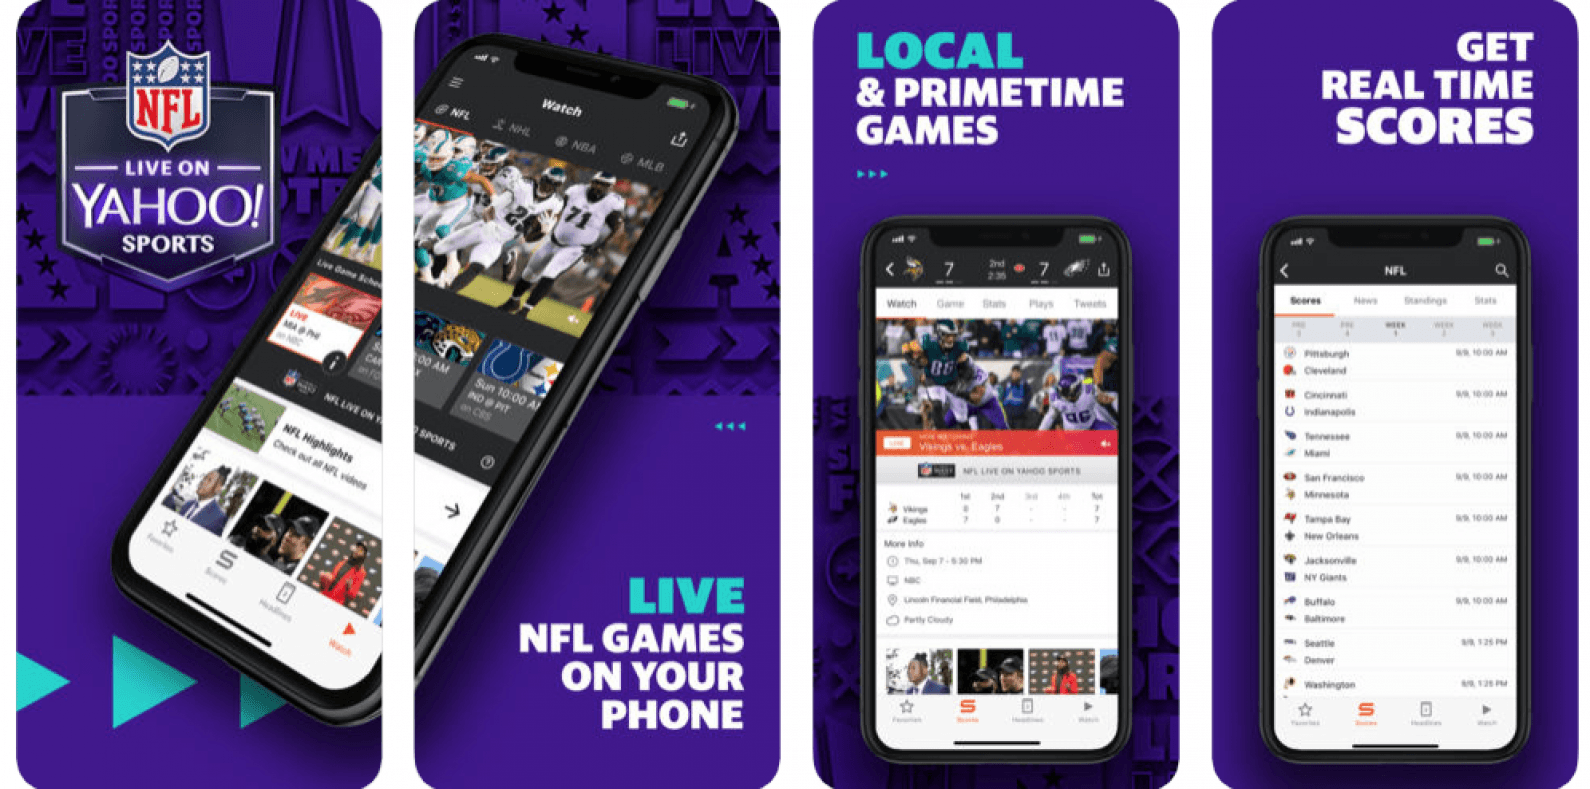 How to Watch the NFL Games without Cable on Apple TV